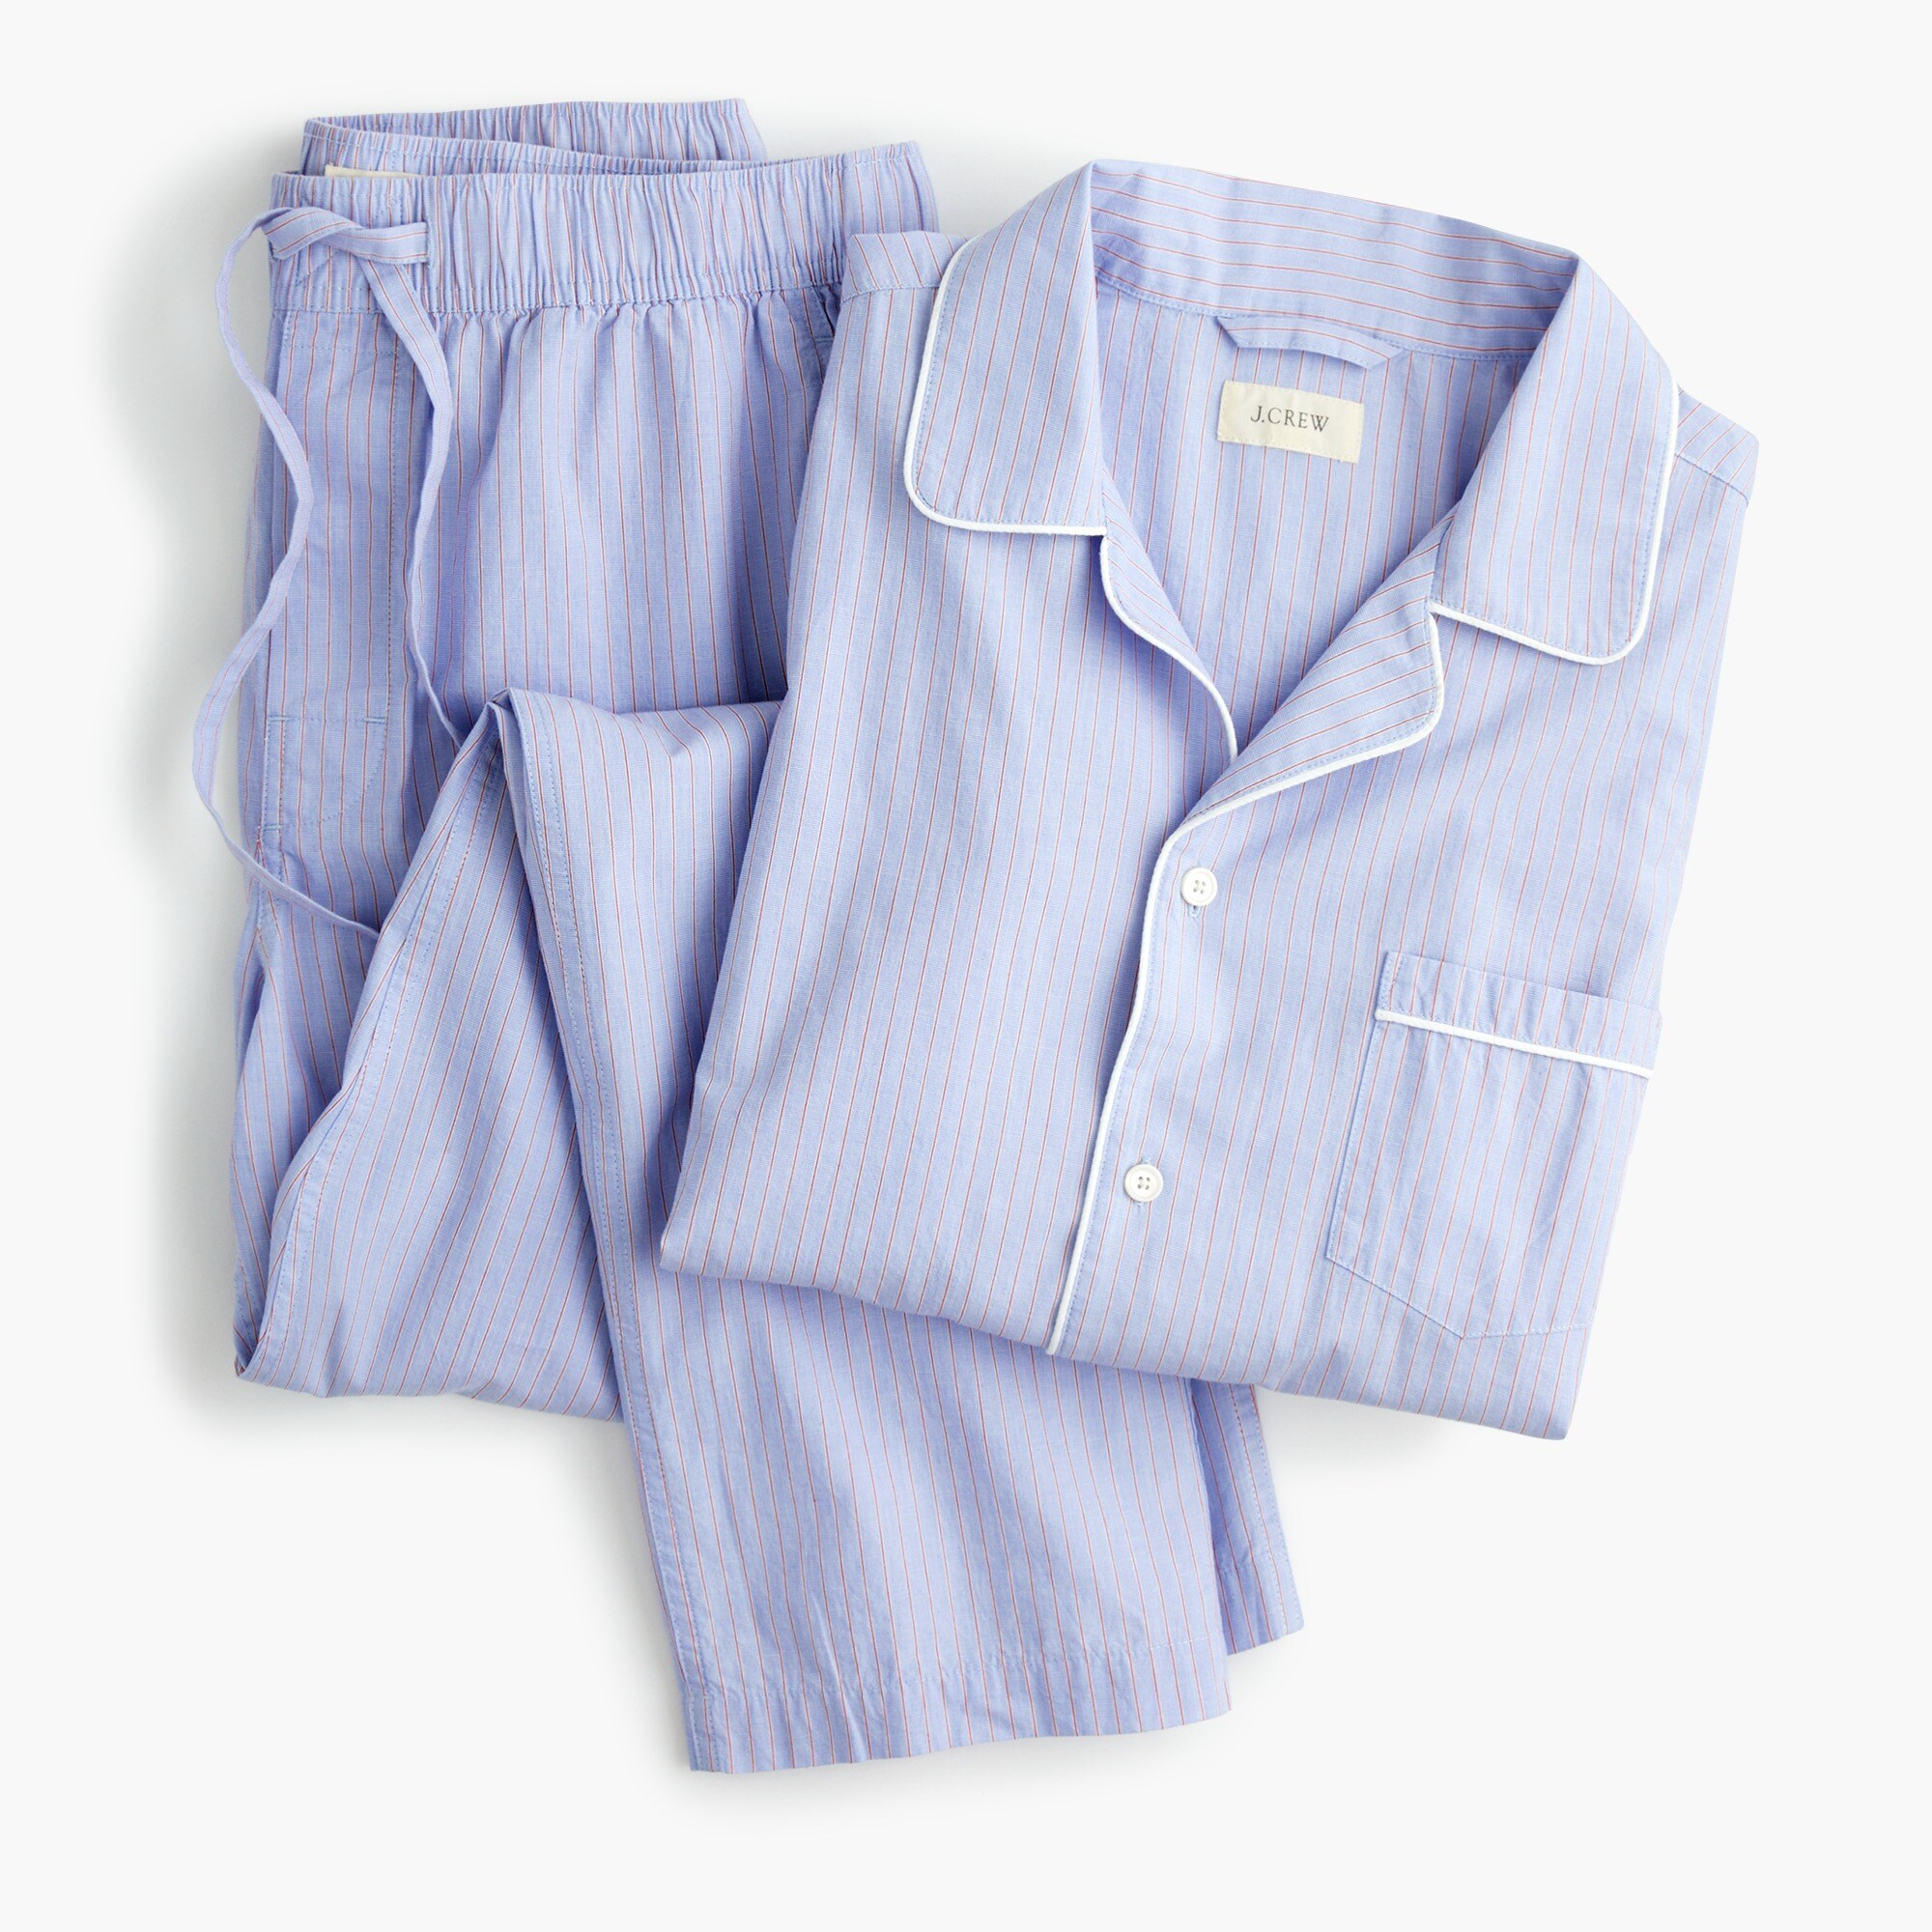 Pajama set in cotton poplin